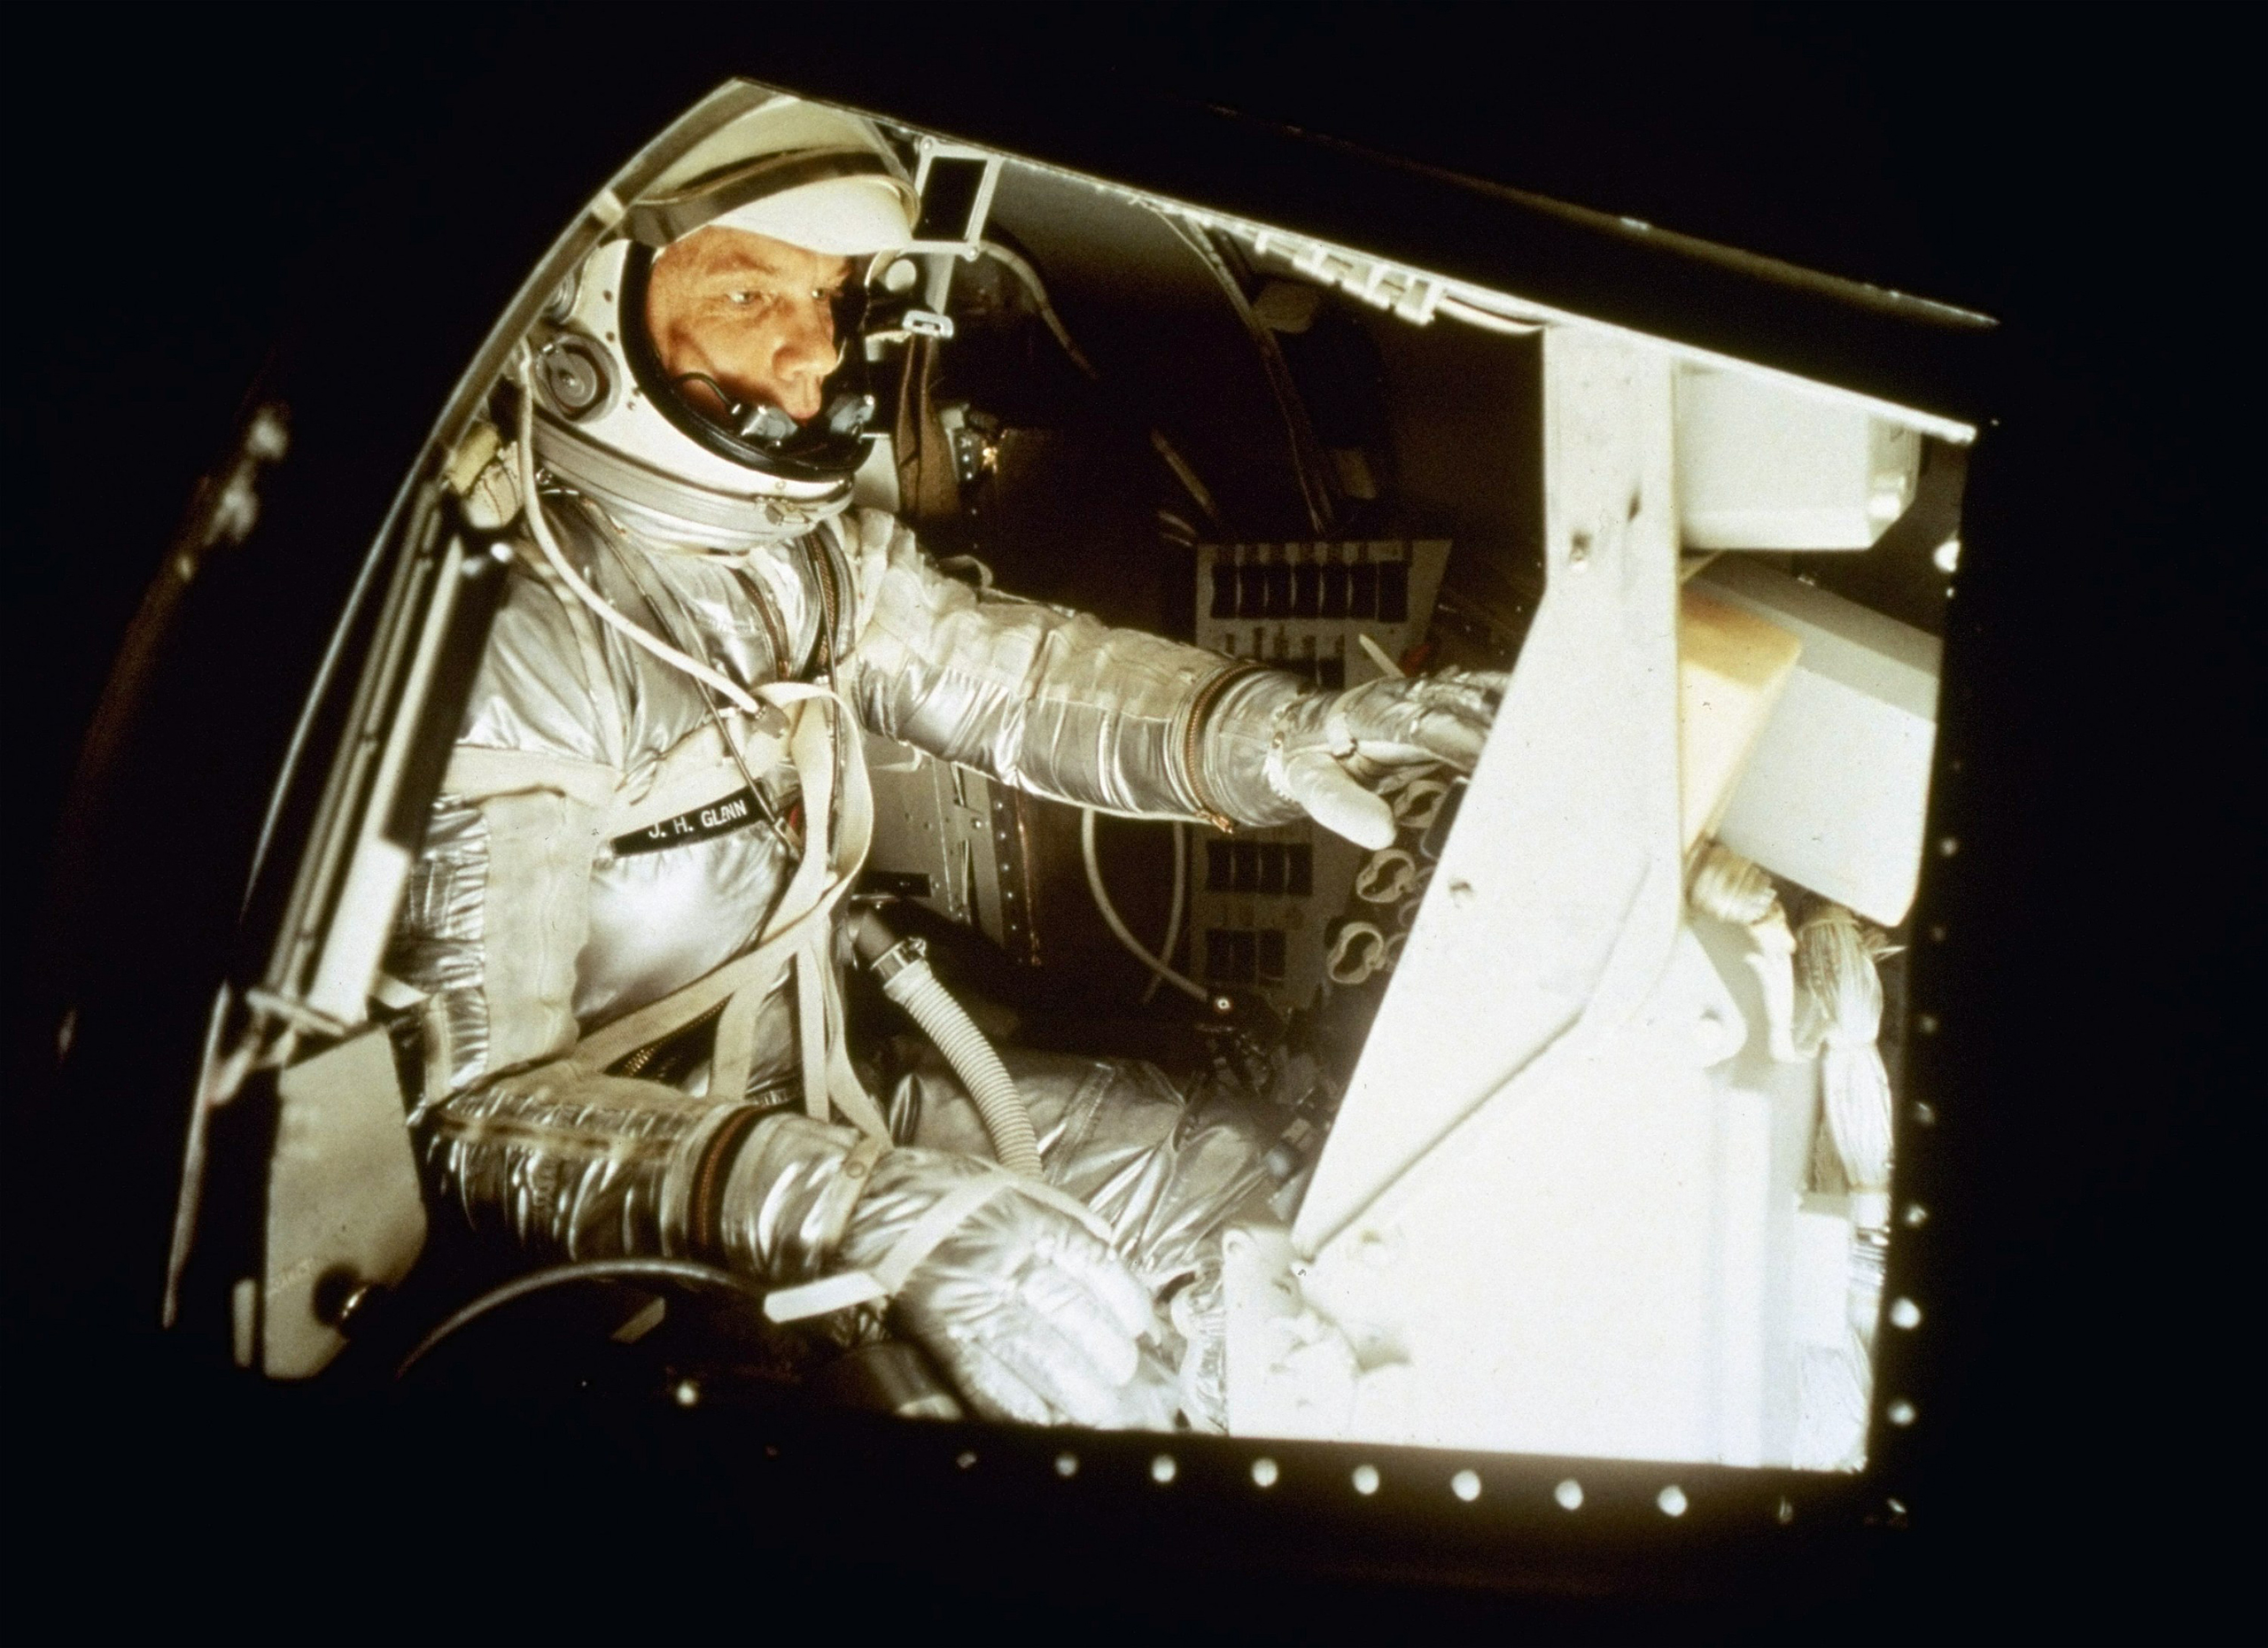 A Model Mercury Inside a training model of the Mercury spacecraft in 1961, Glenn familiarizes himself with the layout of the instrument panels. The capsule was so small, astronauts liked to say you didn't climb inside it — you simply put it on.